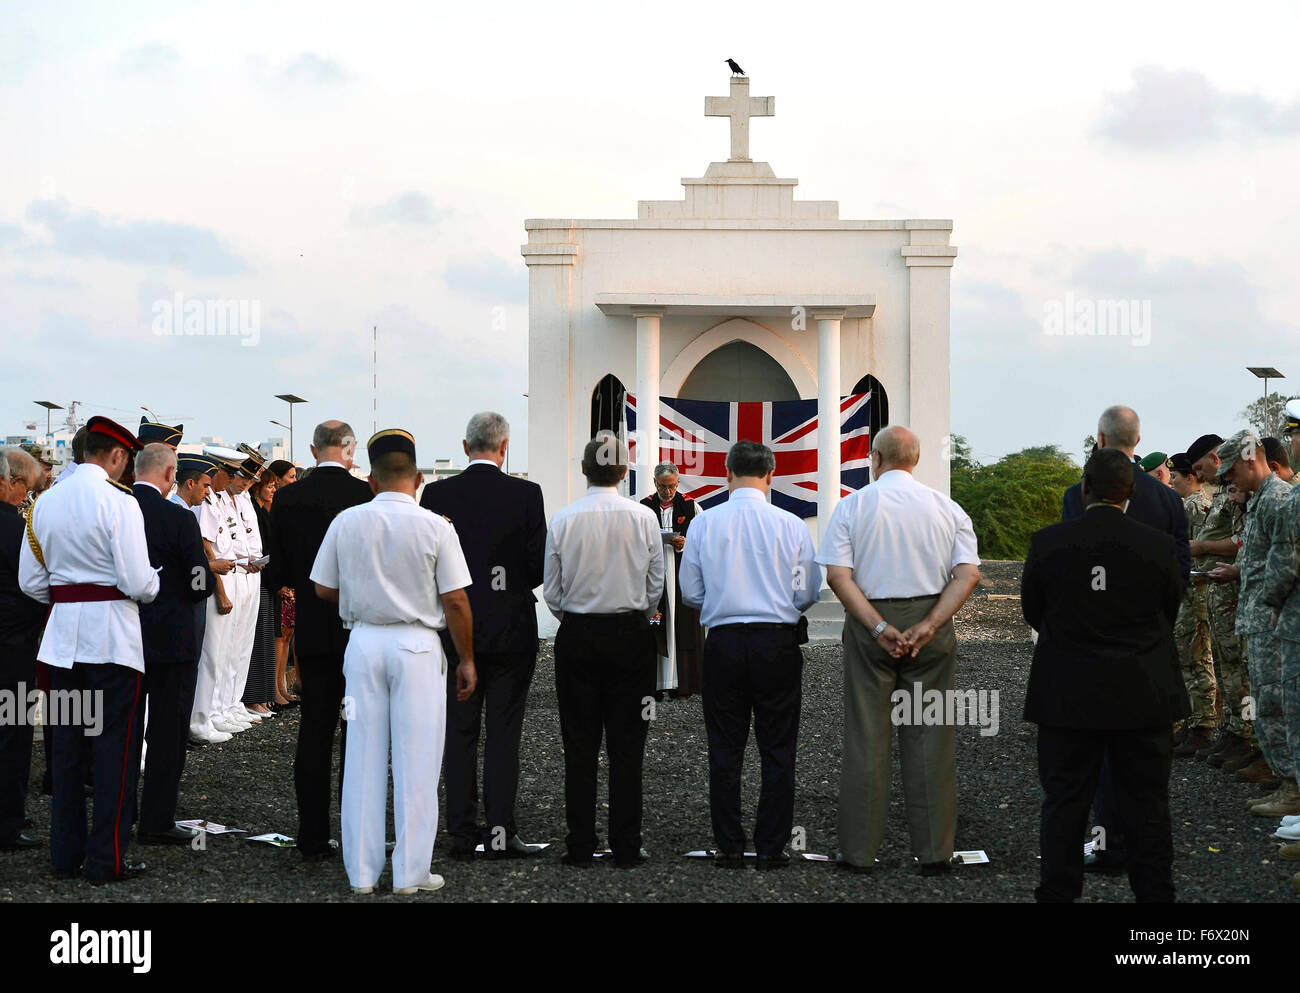 Anglican Bishop of Ethiopia, Grant LeMarquand delivers the closing prayer during Remembrance Day service honoring - Stock Image